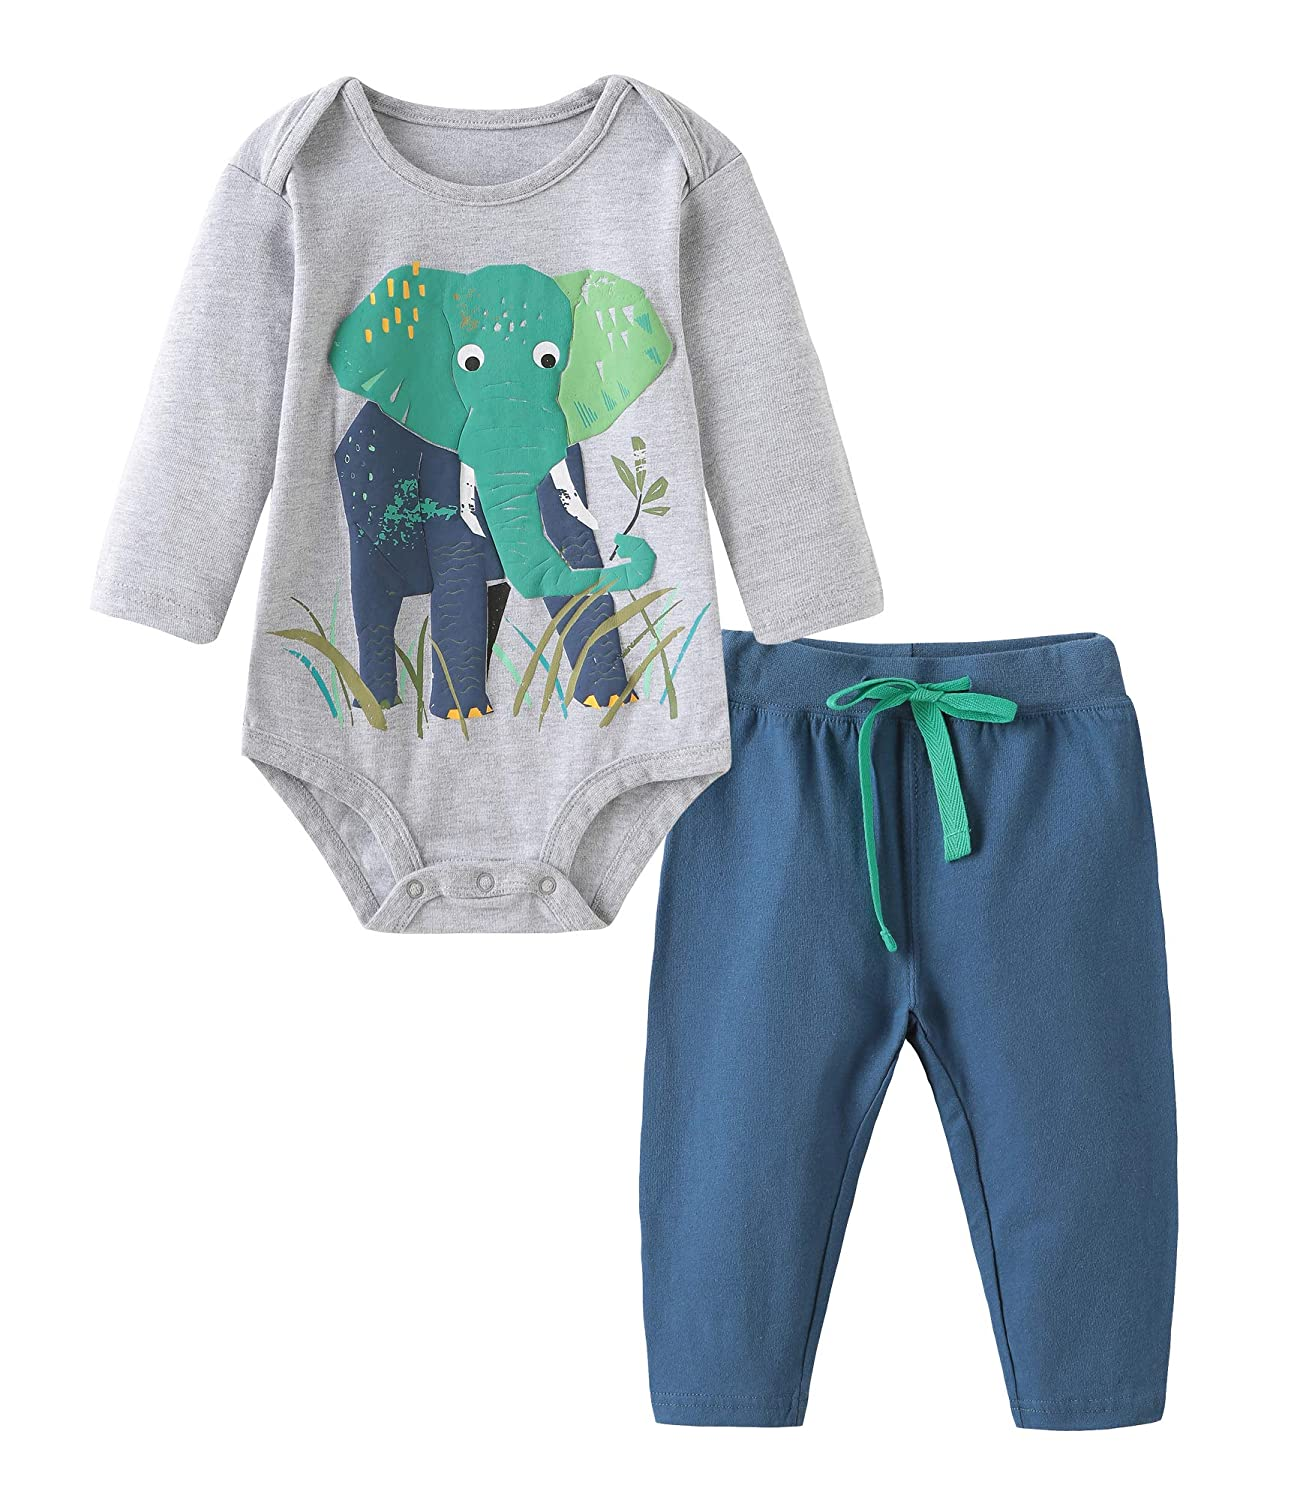 Baby Boys Cotton Sets Shortsleeve Elephant Pattern t-Shirts Shorts 2 pcs Clothing Sets TZbabysetcf001